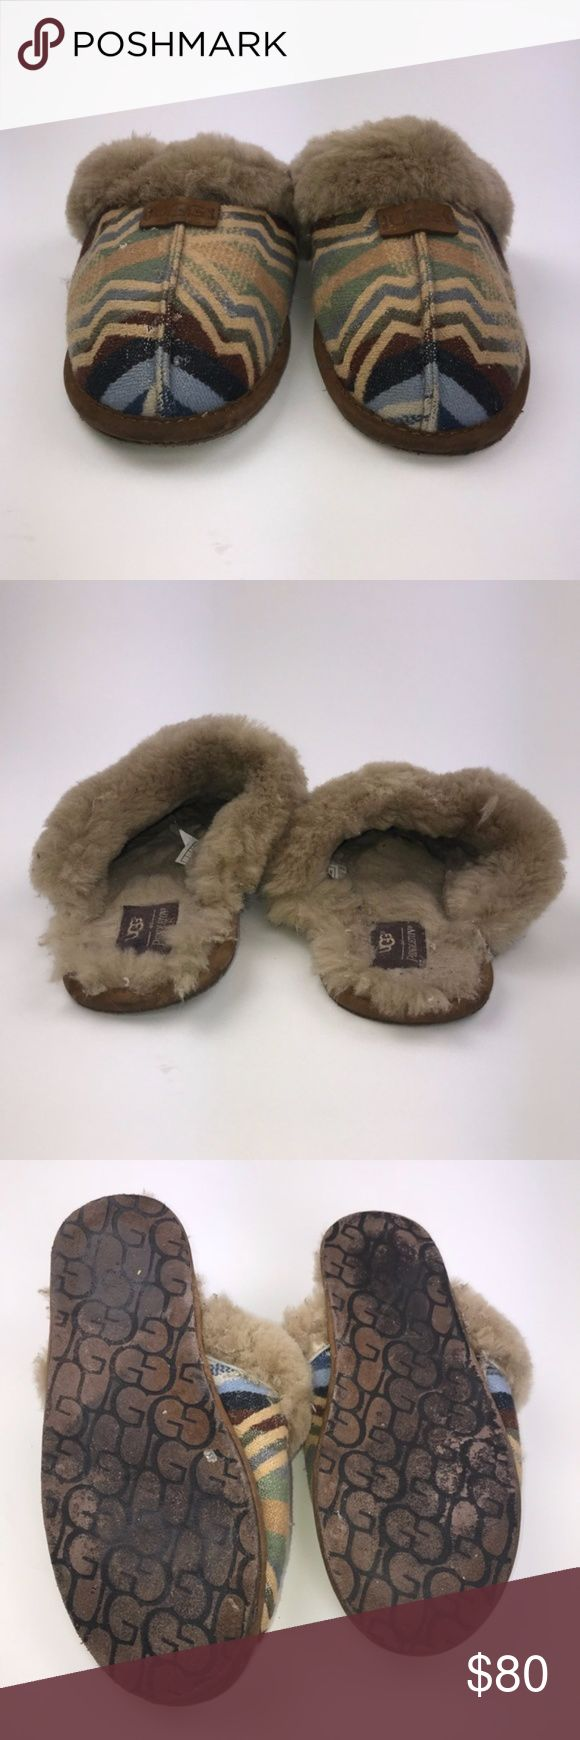 UGG Women's Scuffette Pendleton Fold Down Slippers UGG Australia Women's Pendleton Fold Down Slippers Multi-Colored Size 10 Pre-owned *Any defects or signs of wear are shown in images  PM583 UGG Shoes Slippers